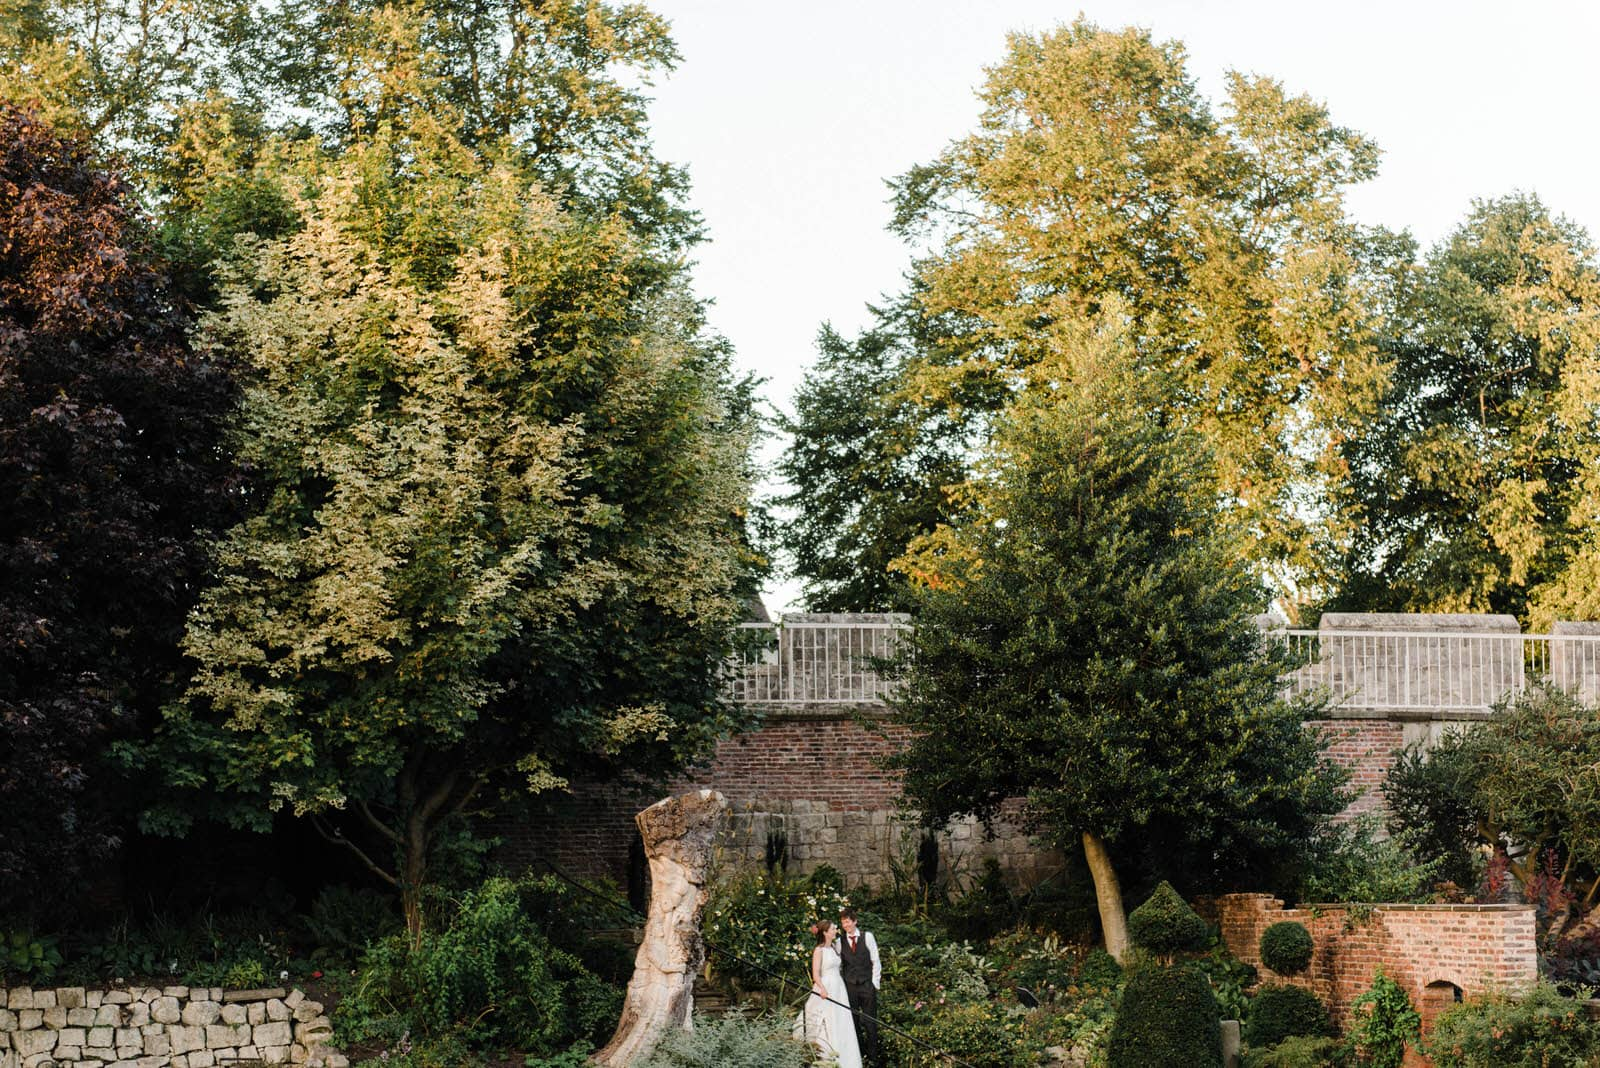 Beautiful sunset image of the bride and groom in the gardens at Grays Court York